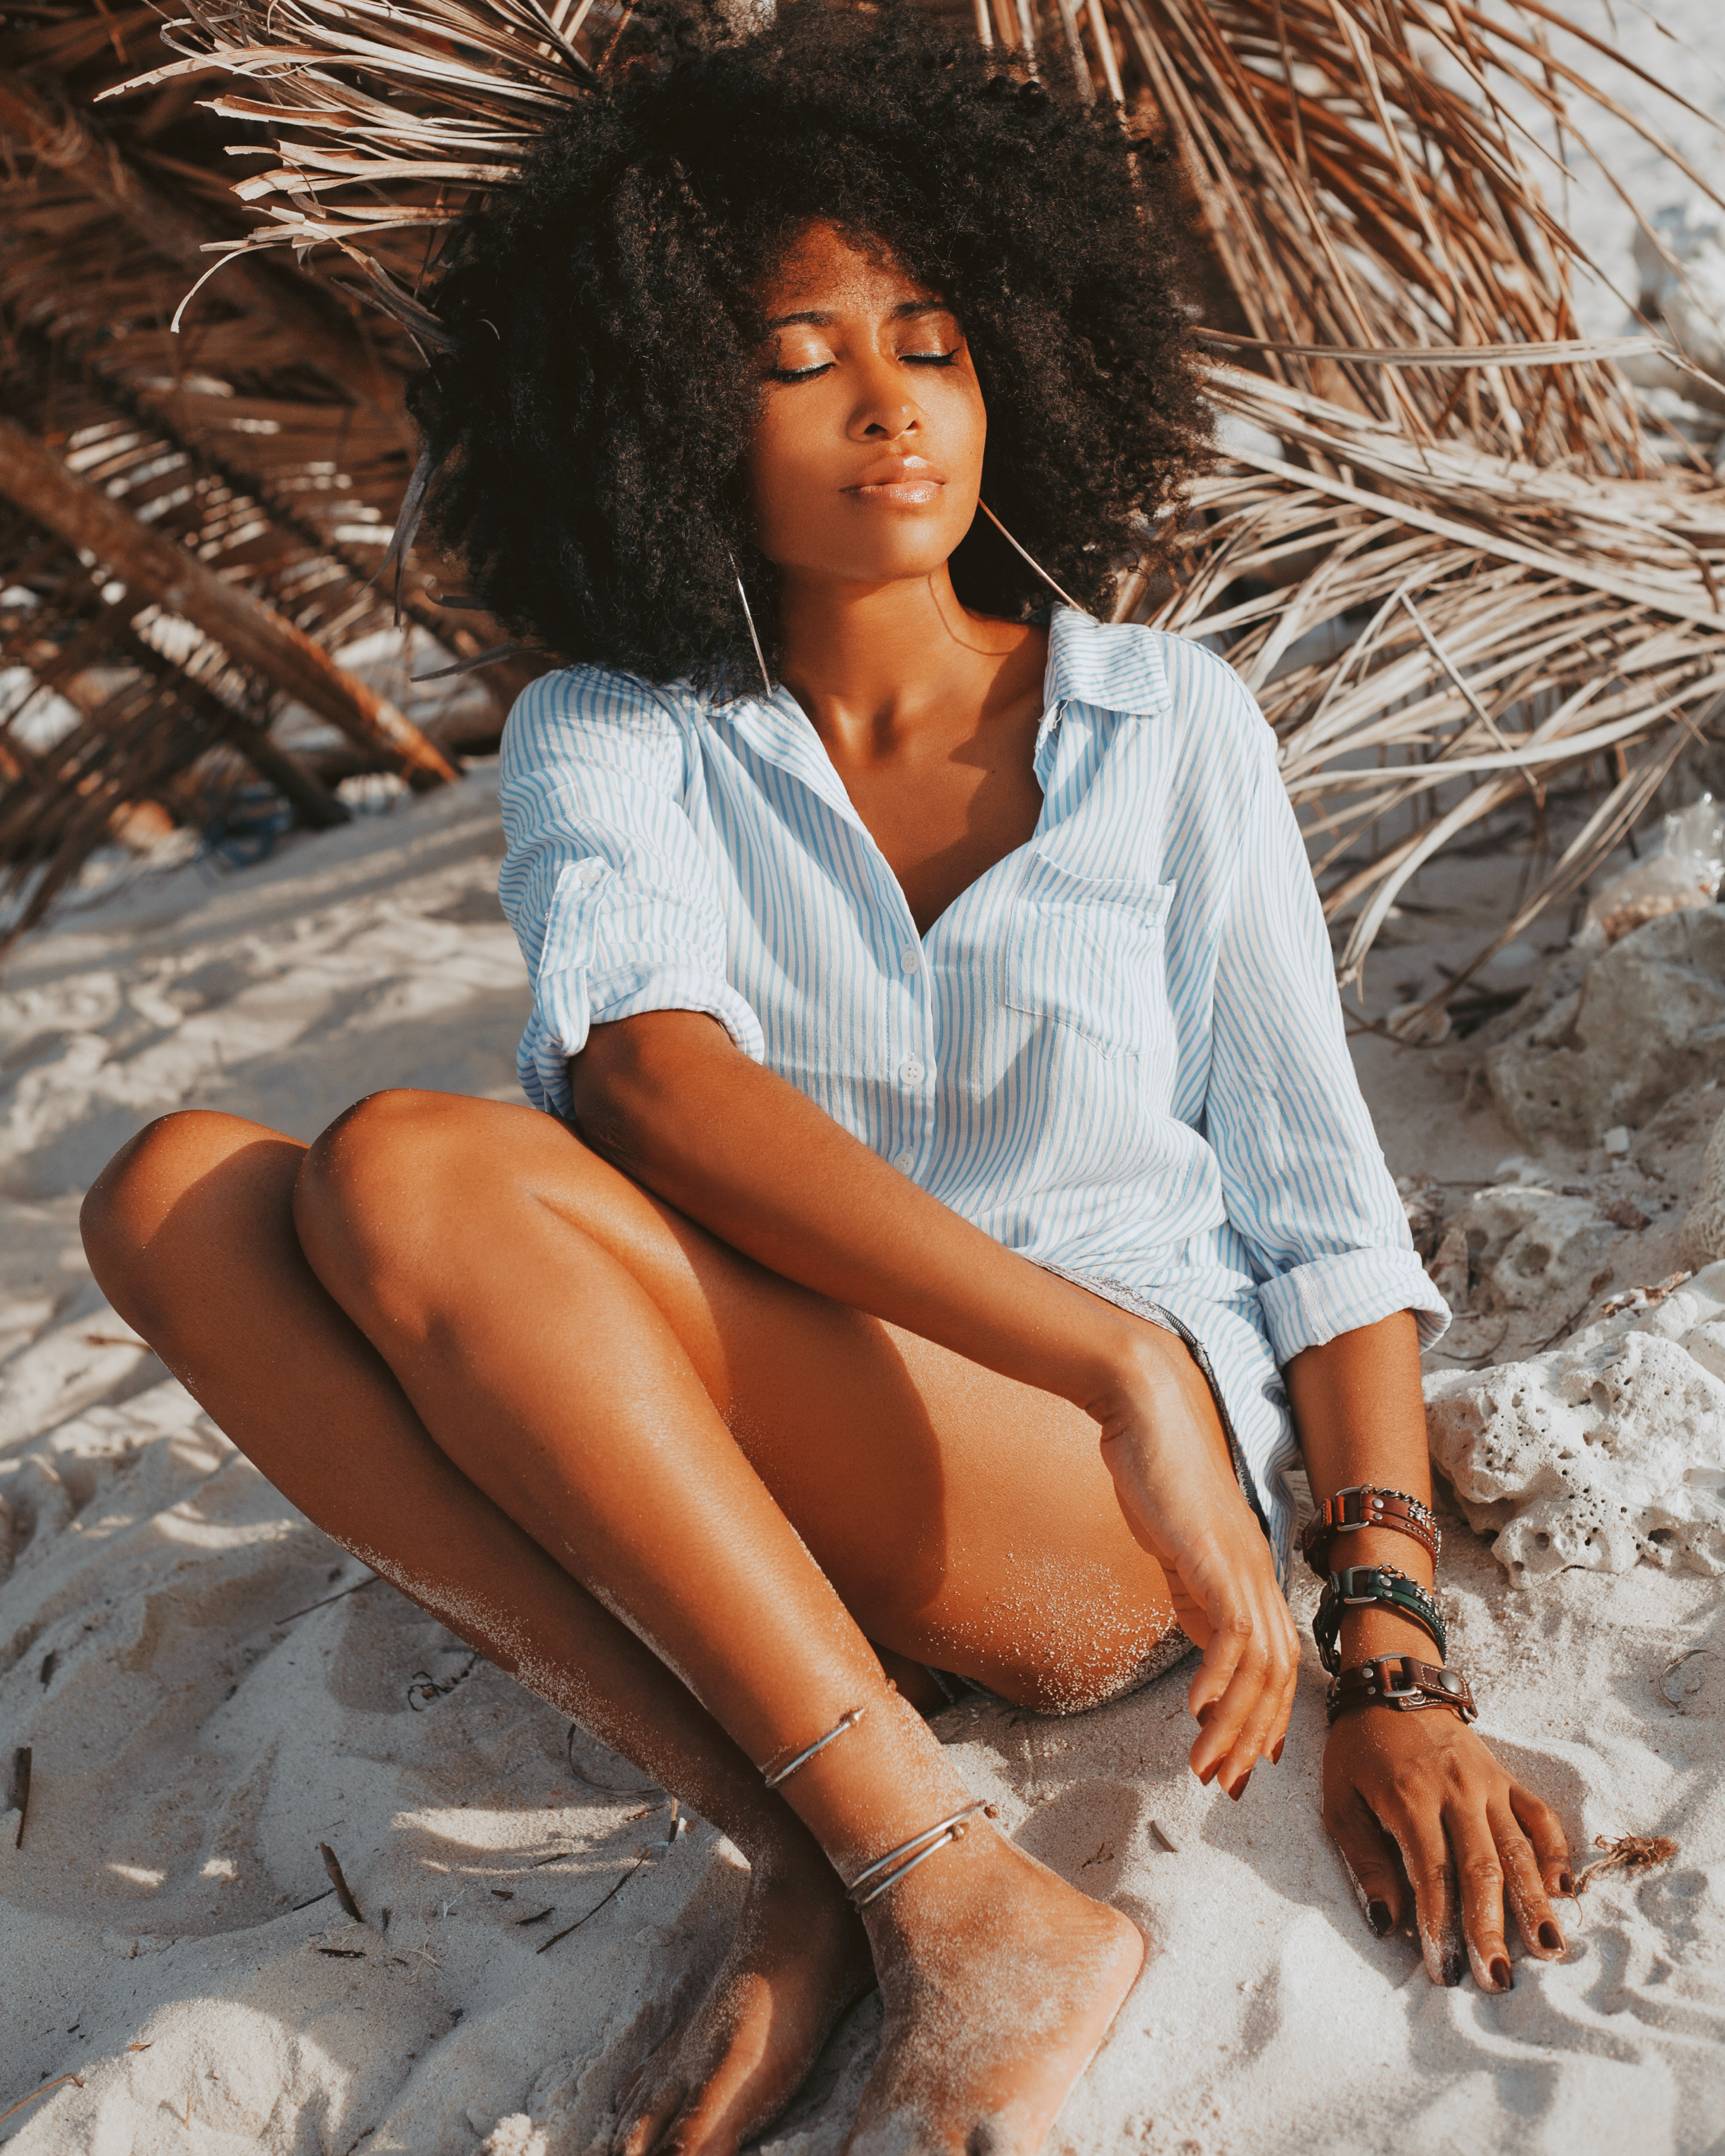 black hair girl sitting on a white sand meditating with closed eyes